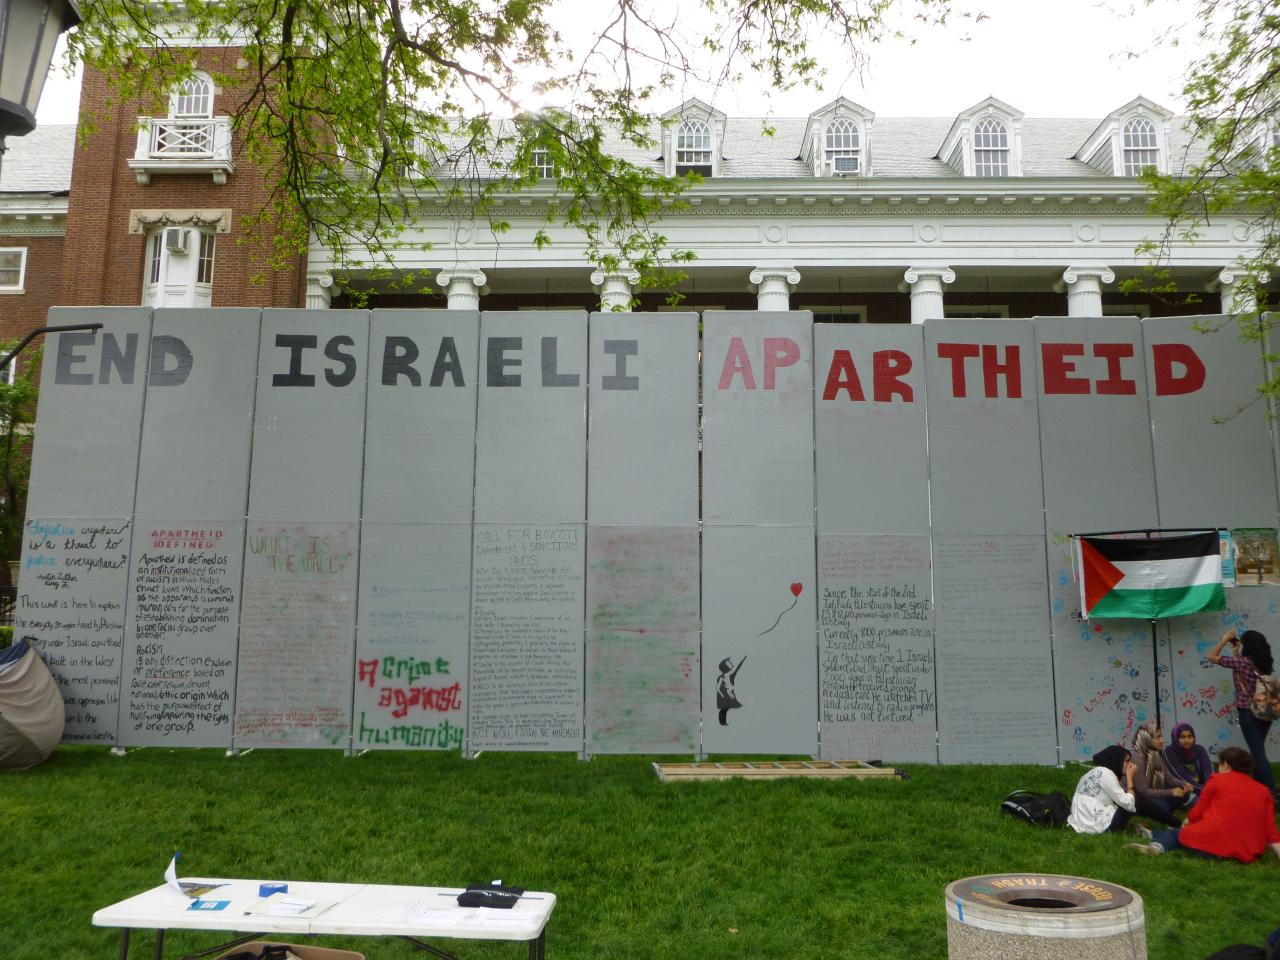 Students for Justice in Palestine put up a wall against Israeli Apartheid on the campus of the University of Illinois at Urbana-Champaign, April 19, 2012. (Benjamin Stone/Flickr)